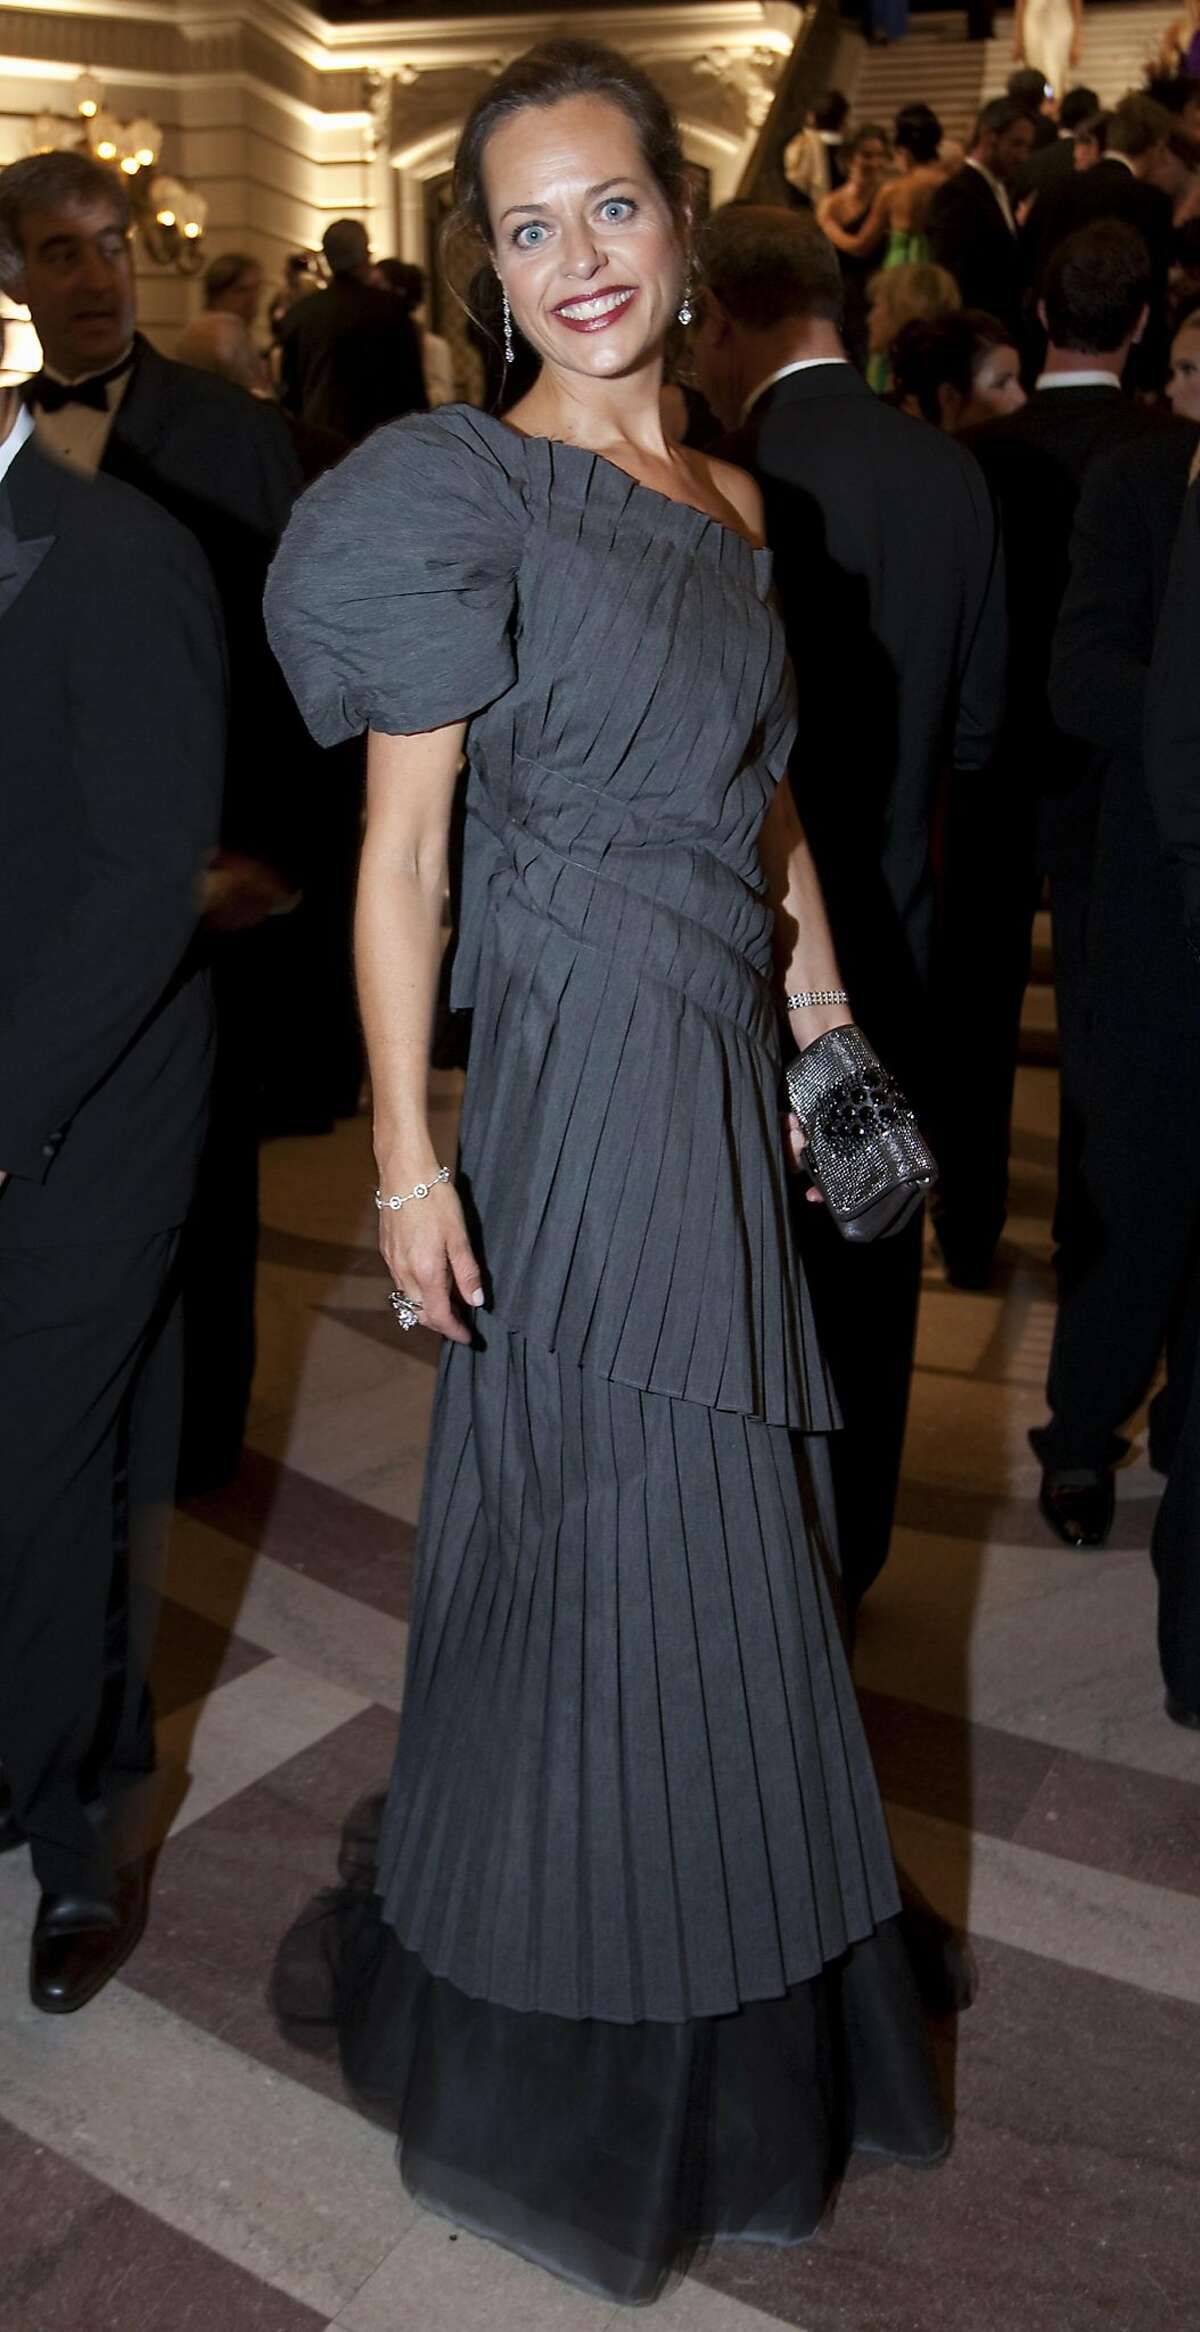 Charlot Malin wears a dress by designer Keyna Aramaguren during the opening night of the San Francisco Opera at the City Hall on September 11, 2009 in San Francisco, Calif. Photograph by David Paul Morris / Special to the Chronicle